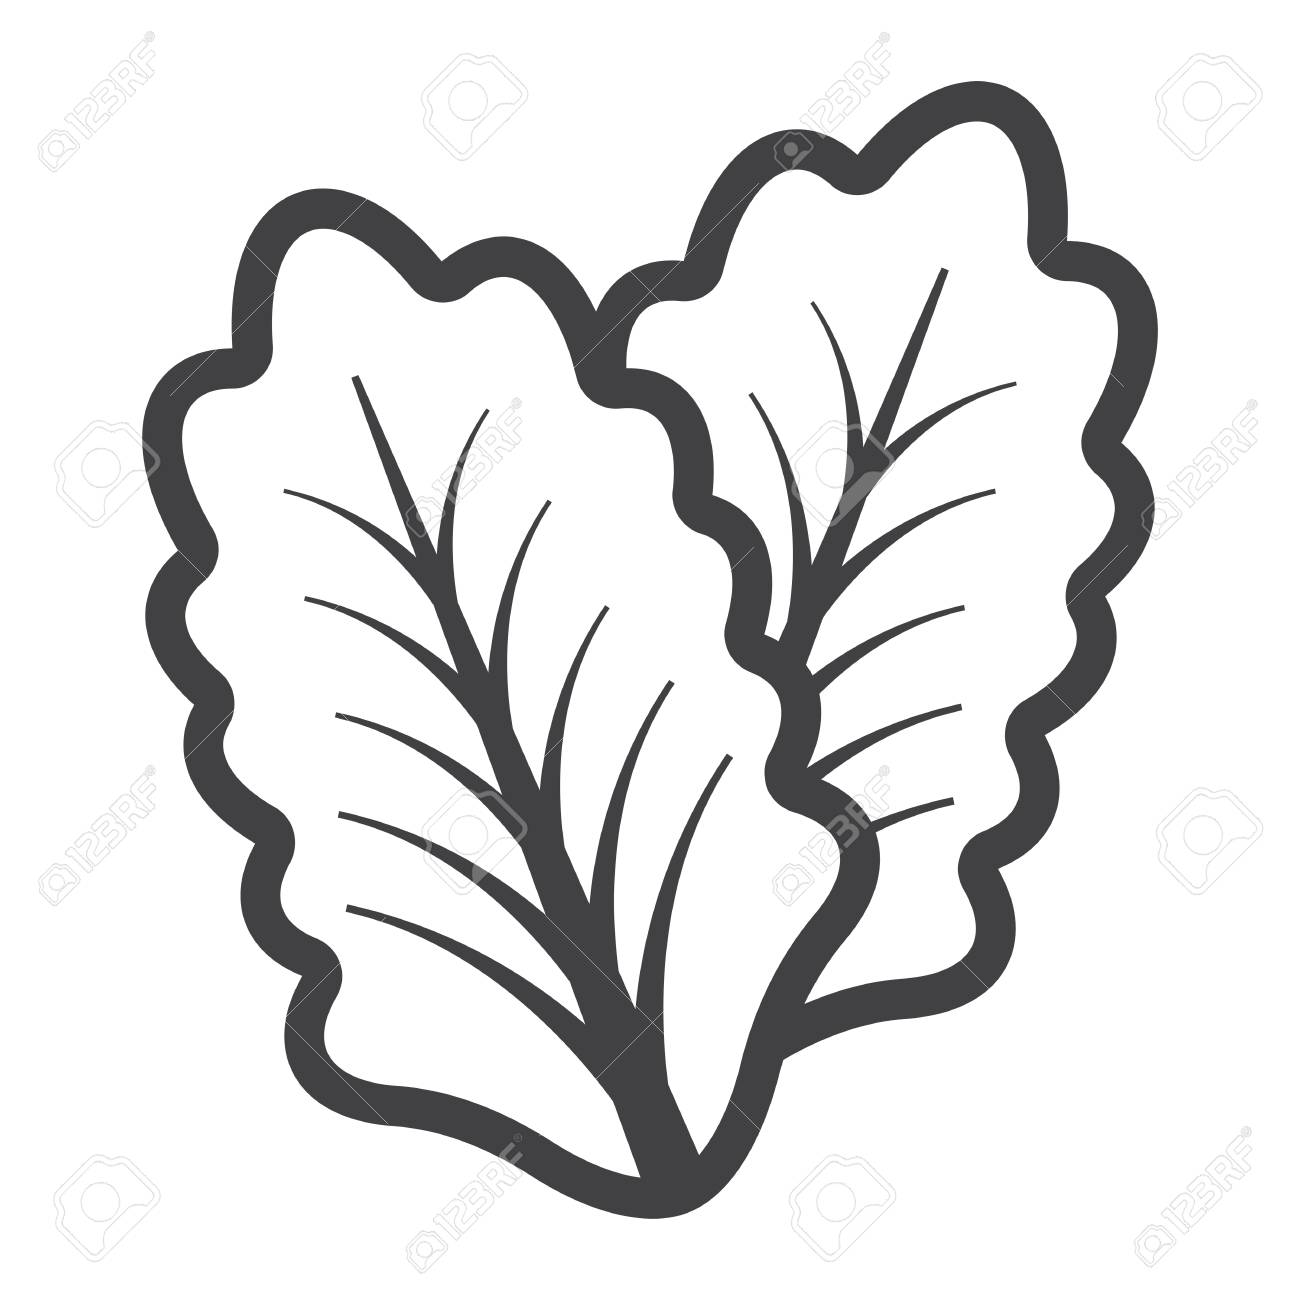 lettuce line icon vegetable and salad leaf vector graphics rh 123rf com royalty free graphics download royalty free graphics for games